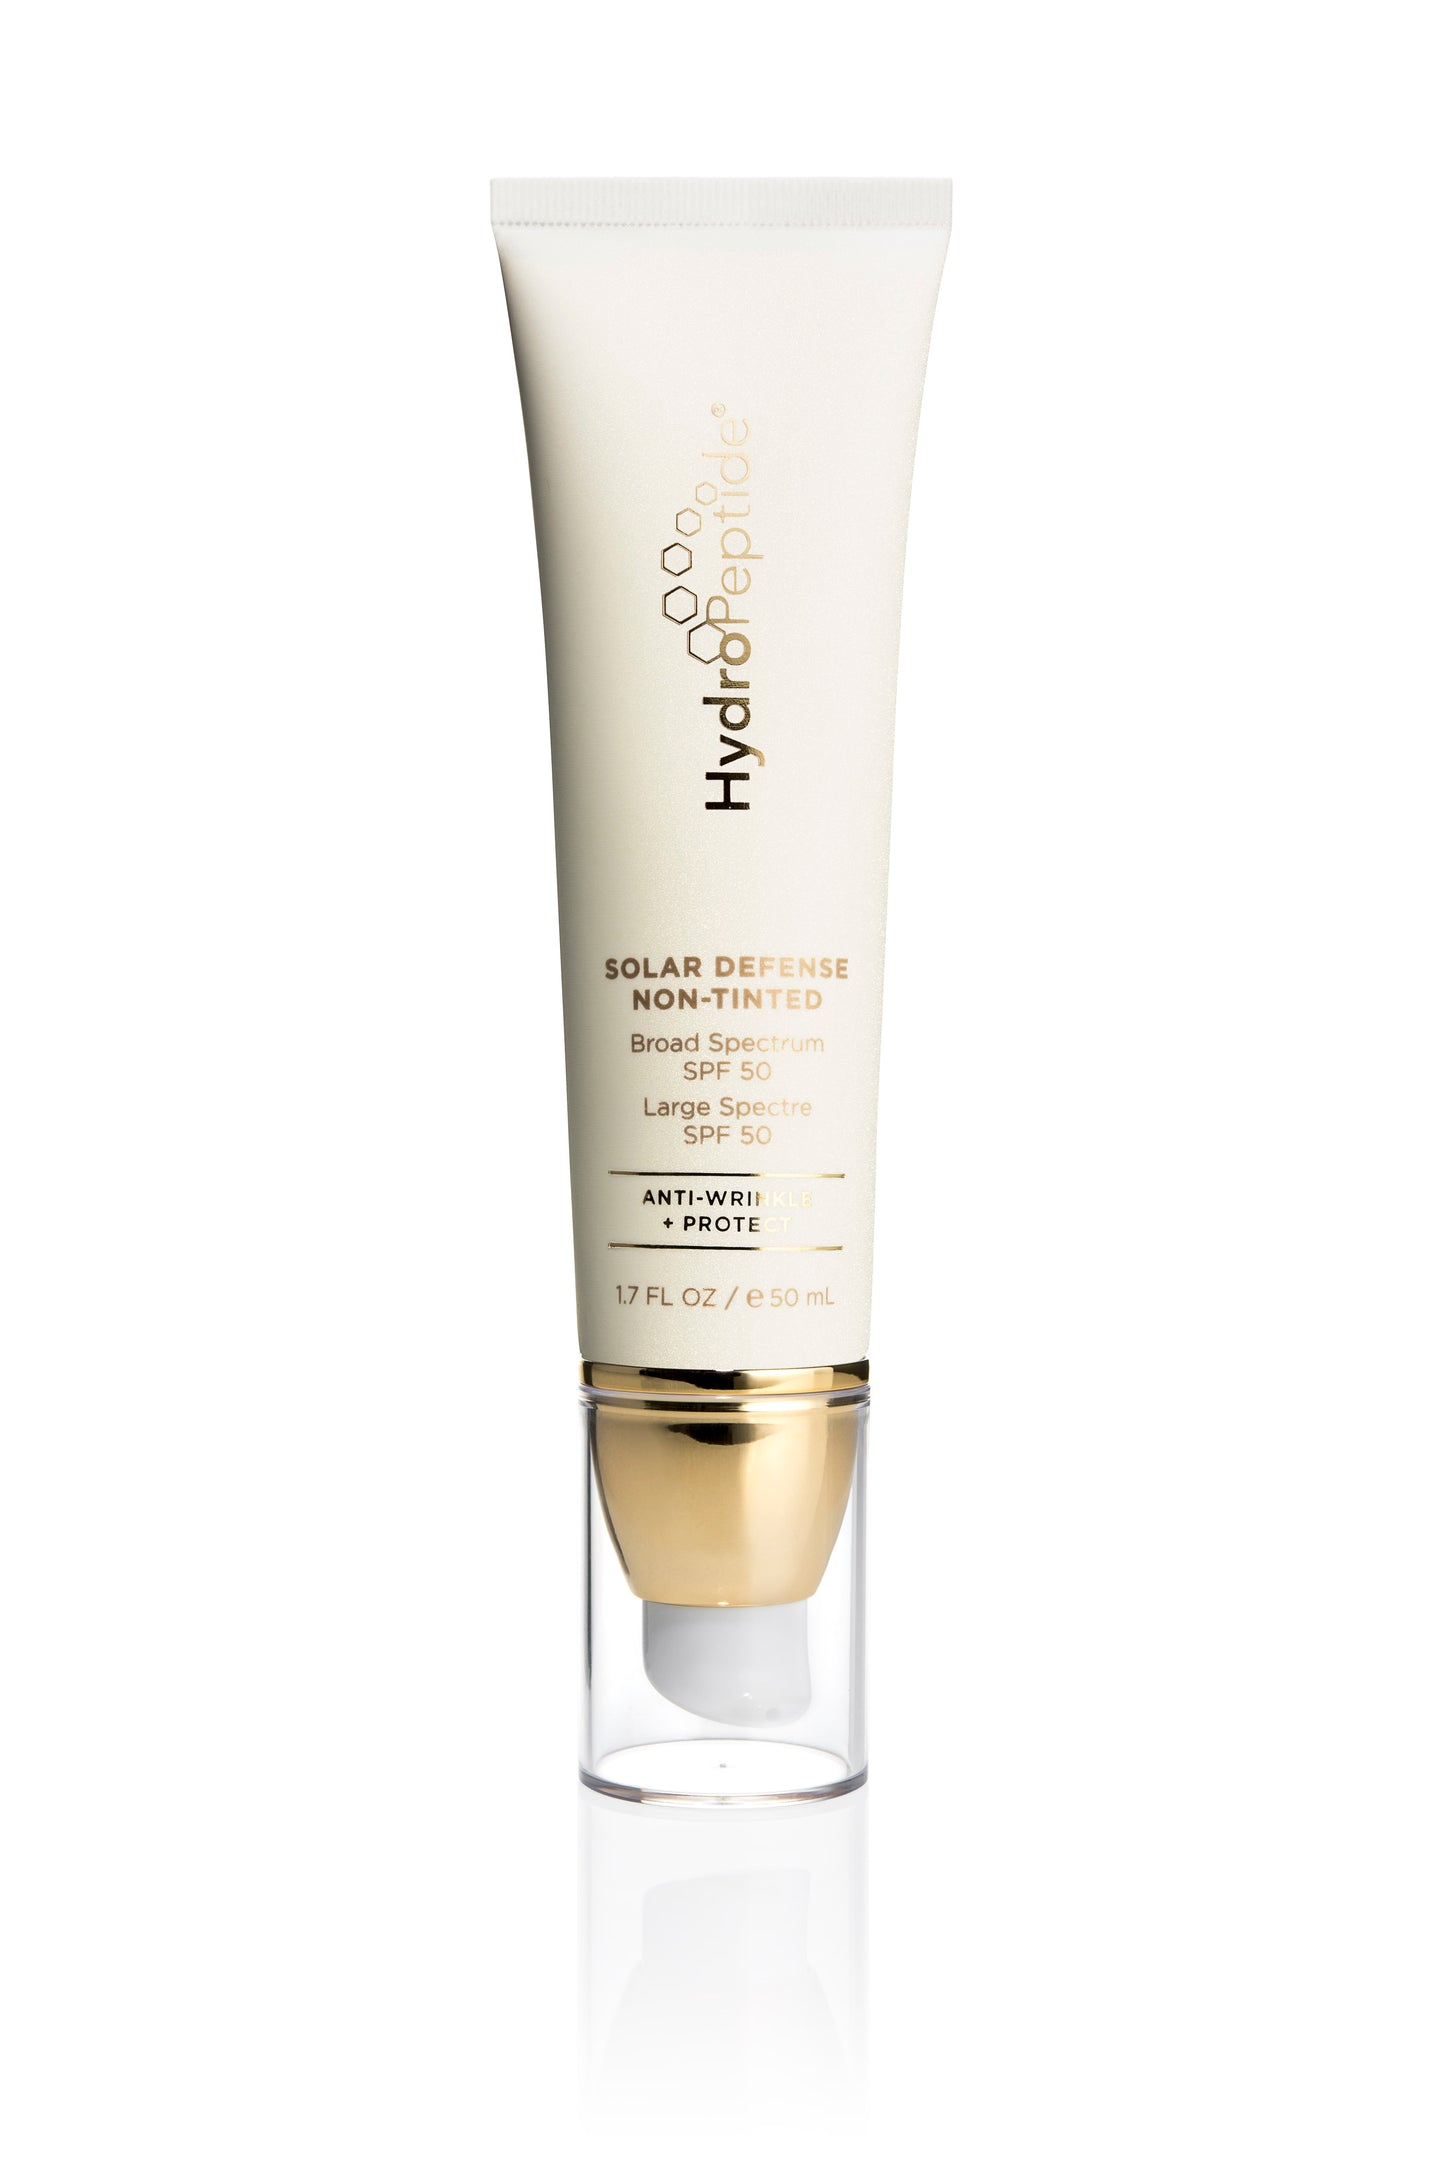 HydroPeptide Solar Defense Non-Tinted SPF 50 at The Summit Spa